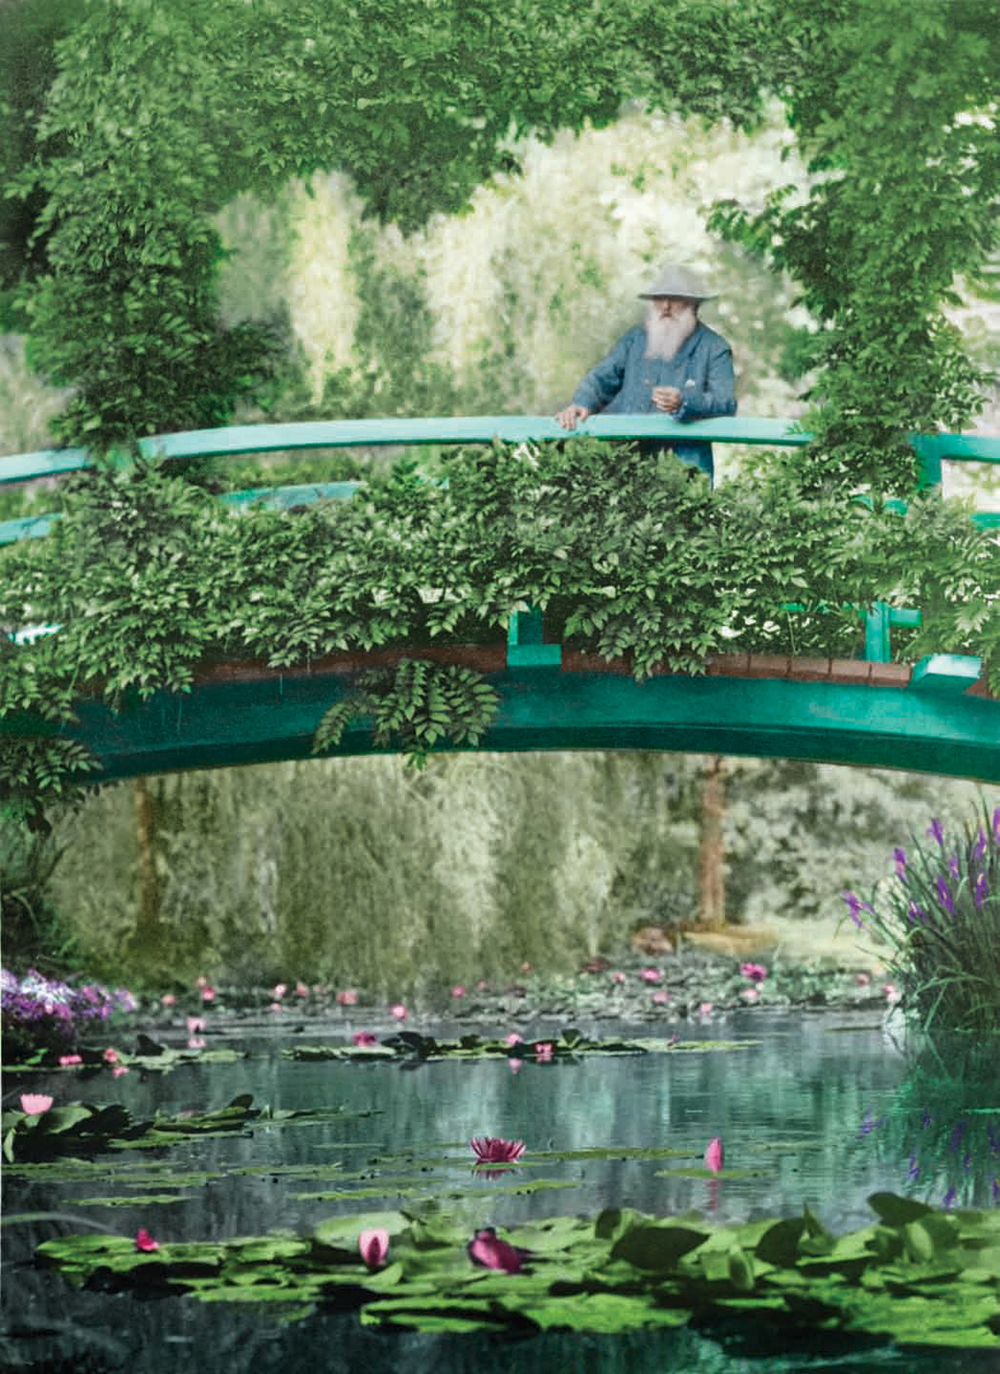 Monet's Garden. Giverny, France. 1922.